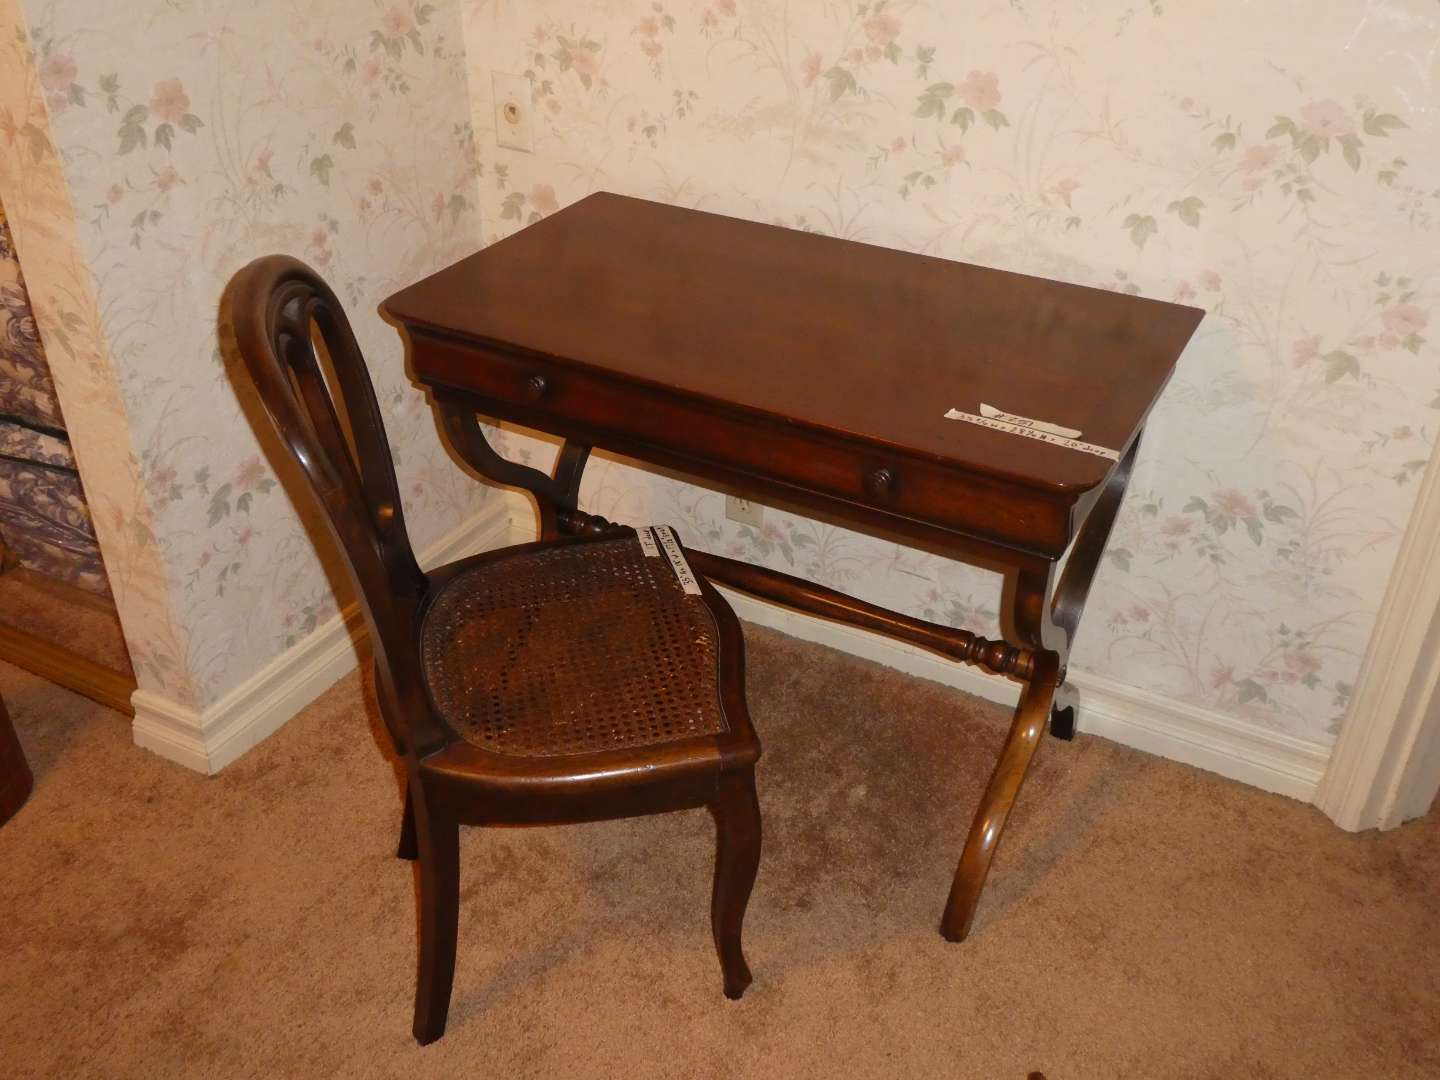 """Lot # 251 - Super Cool Vintage """"French Writing Desk"""" & Chair (main image)"""